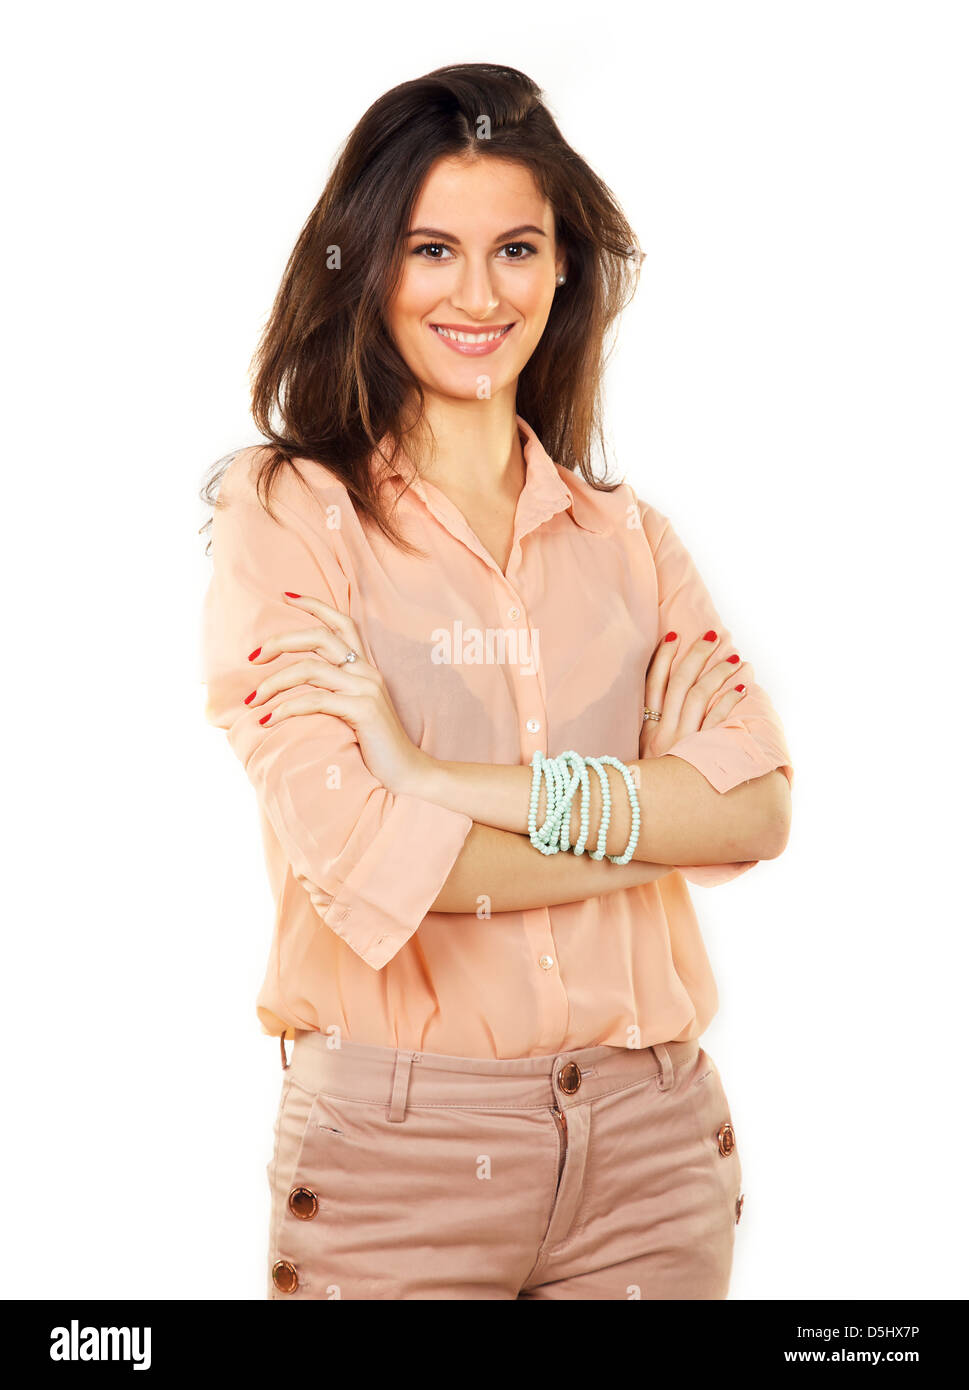 Corporate woman with arms folded against white background - Stock Image